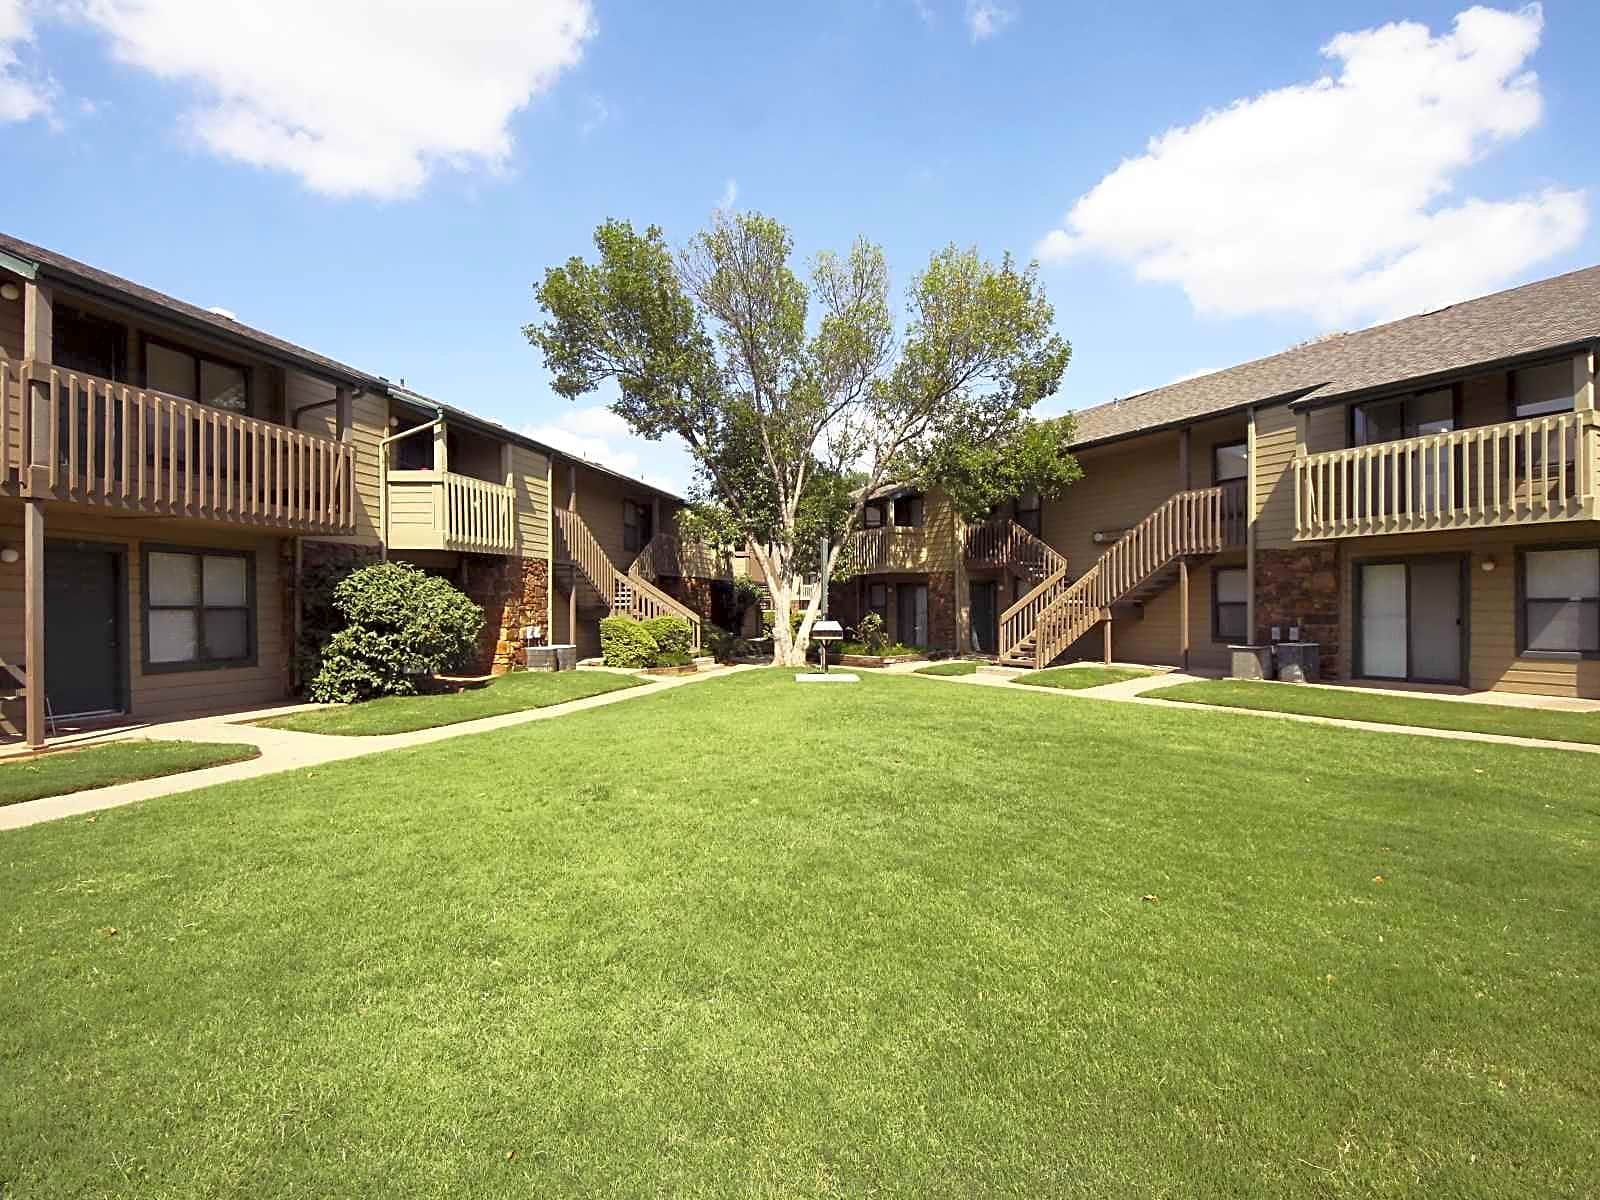 Apartments And Houses For Rent Near Me In Oklahoma City Ok